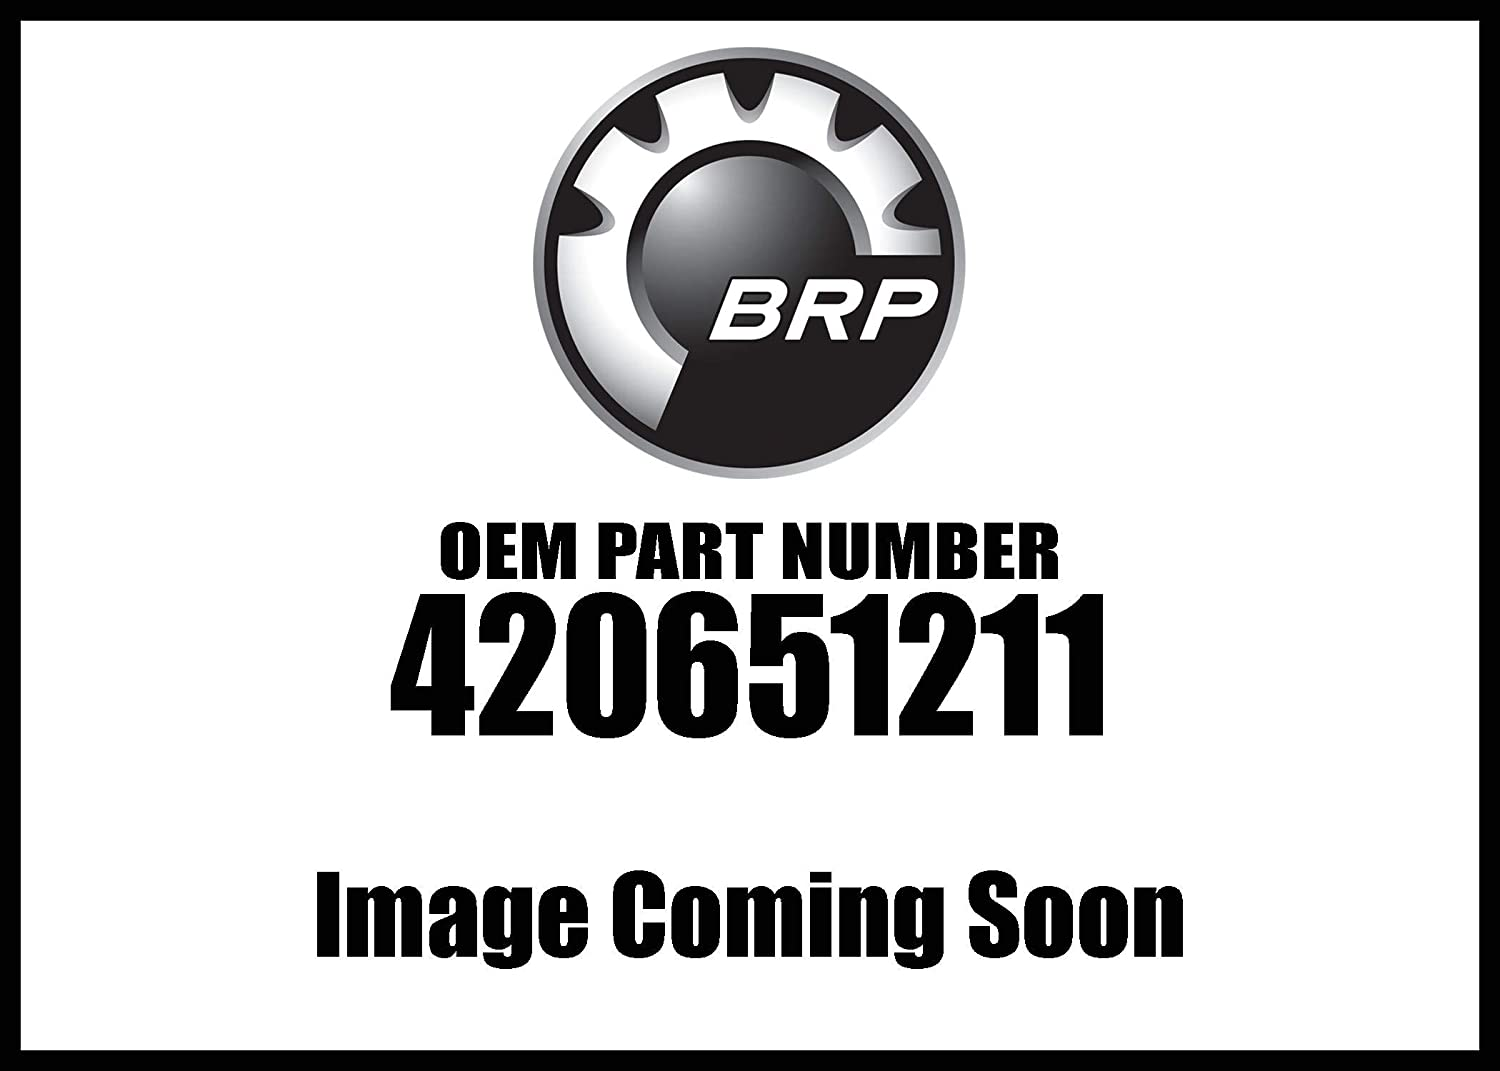 Can-Am 2008-2018 Bombing new work Outlander Ranking TOP1 800R Traxter Gasket New 420651211 Max